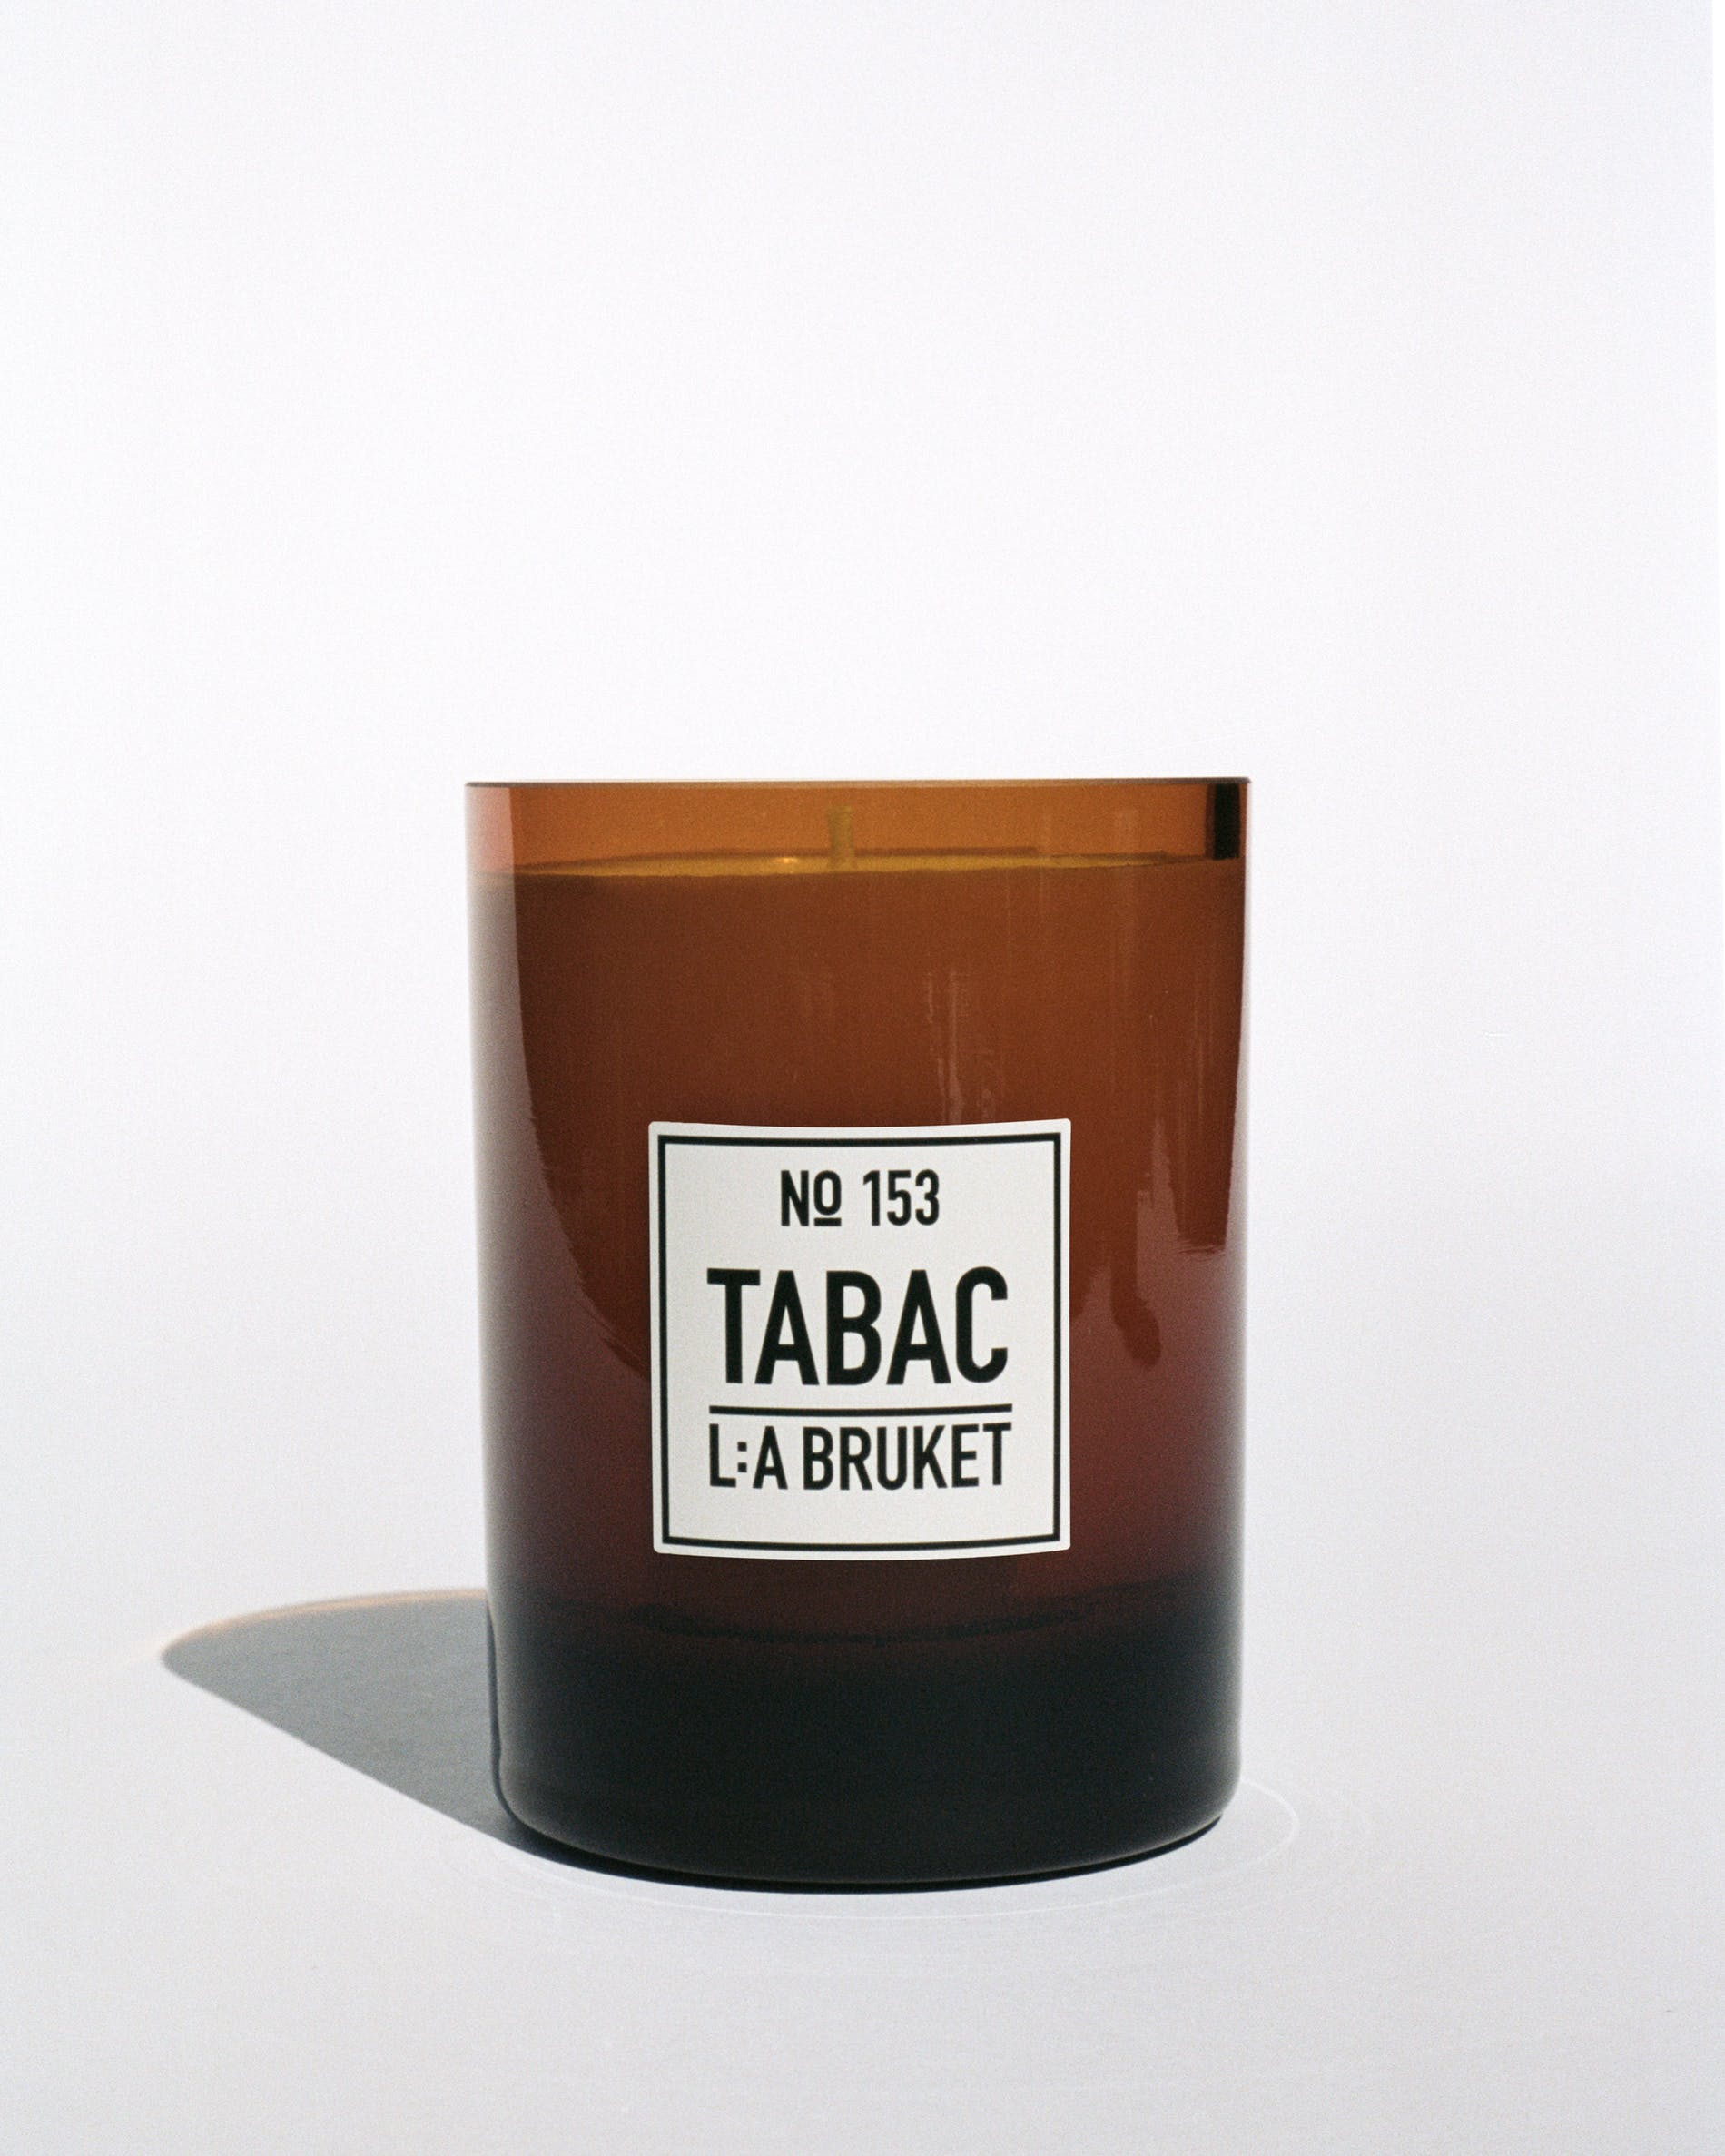 L:A Bruket candle in tabac